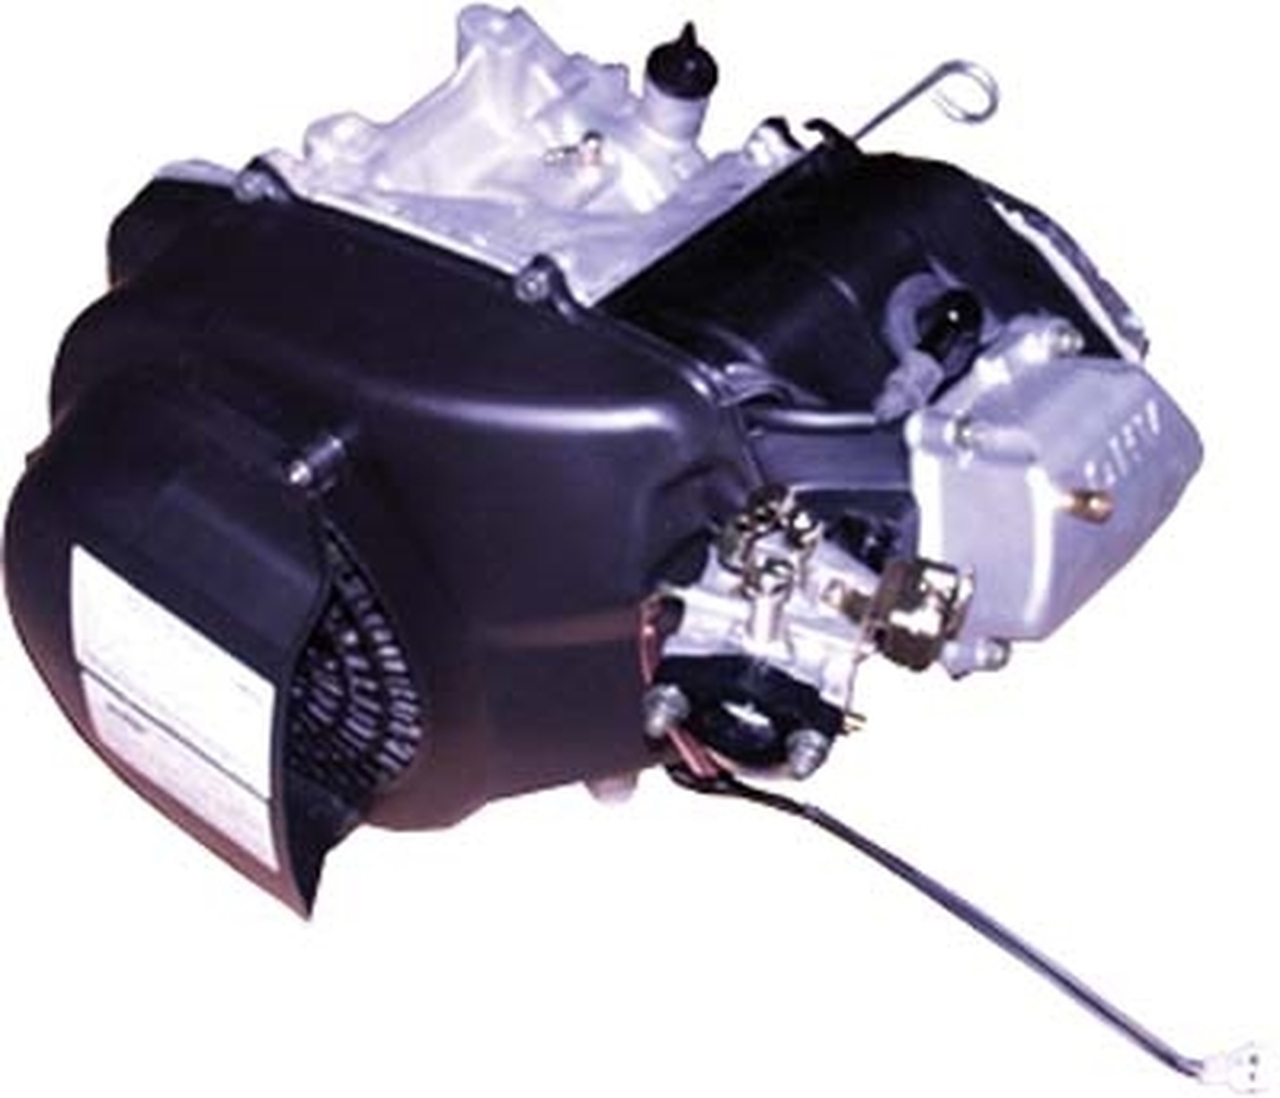 Yamaha Golf Cart Gas Motors, Engines & Rebuild Kits for Sale